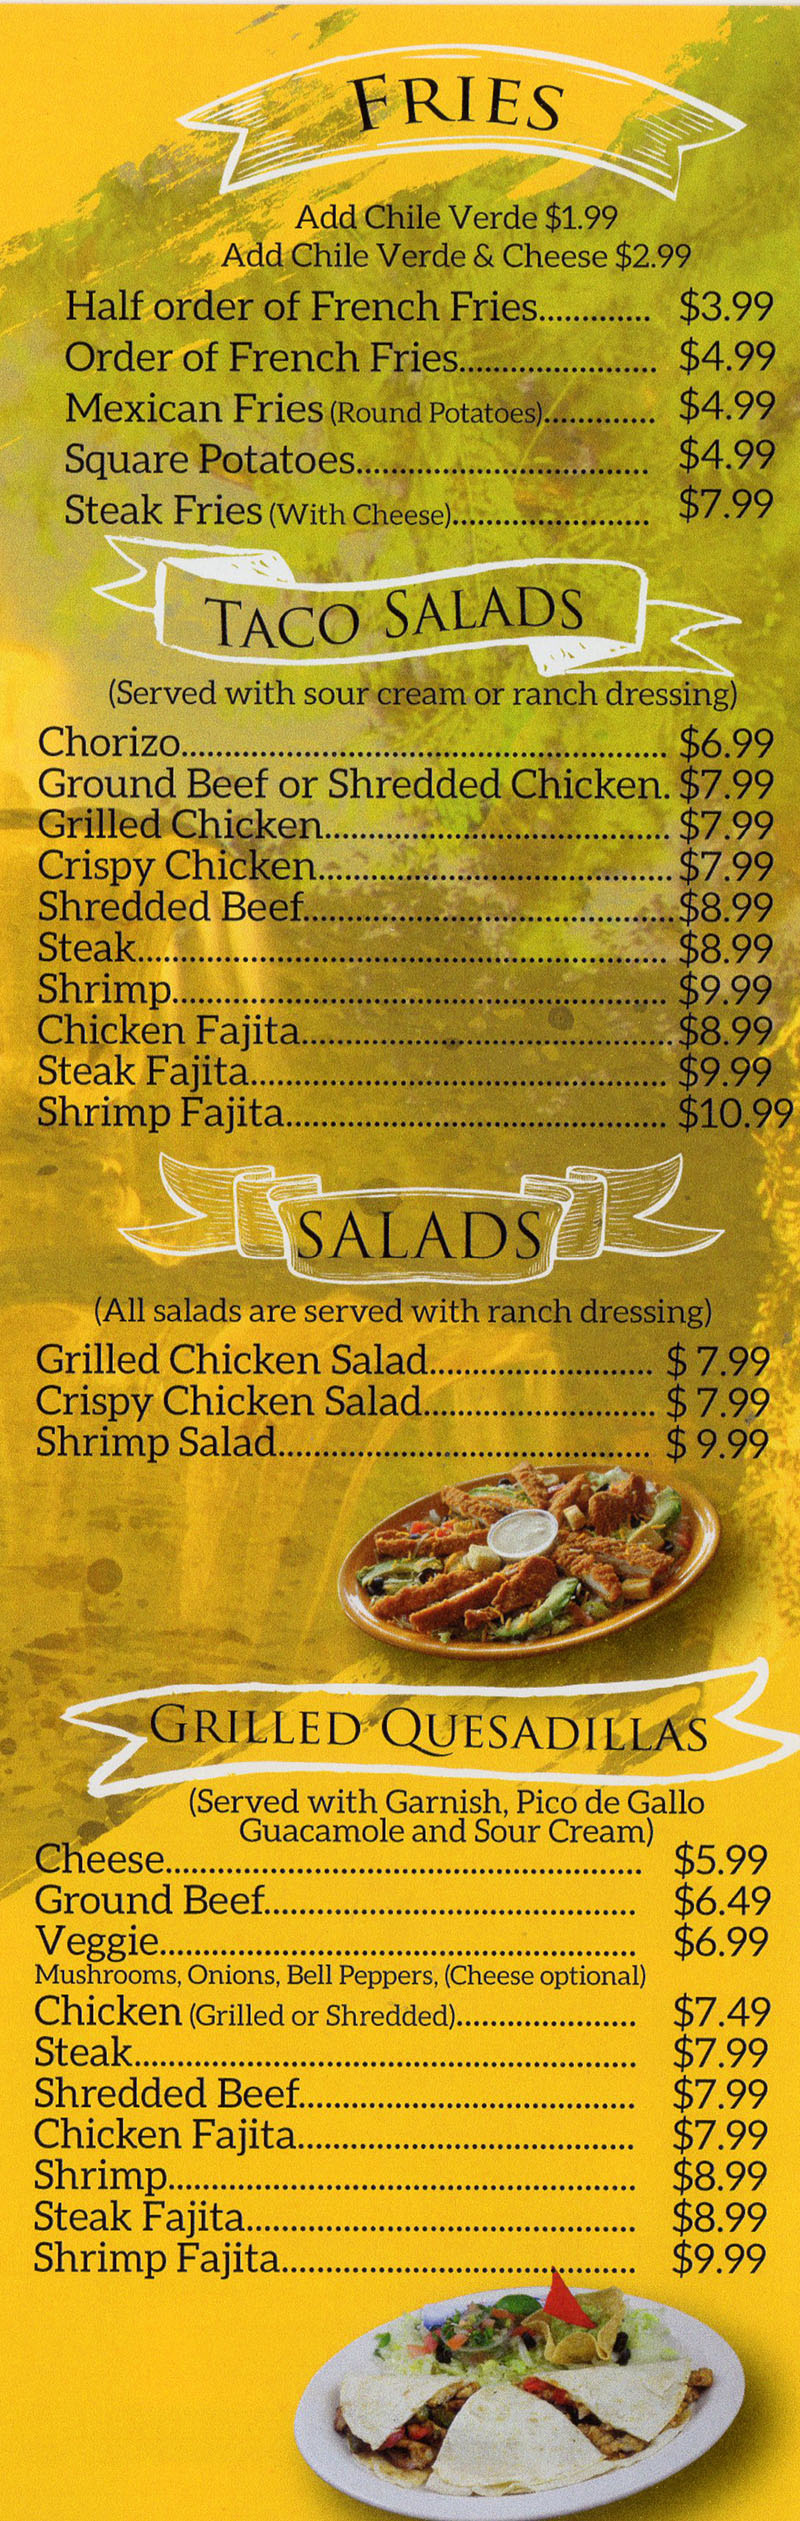 La Fountain menu - fries, taco salads, saalds, grilled quesadillas